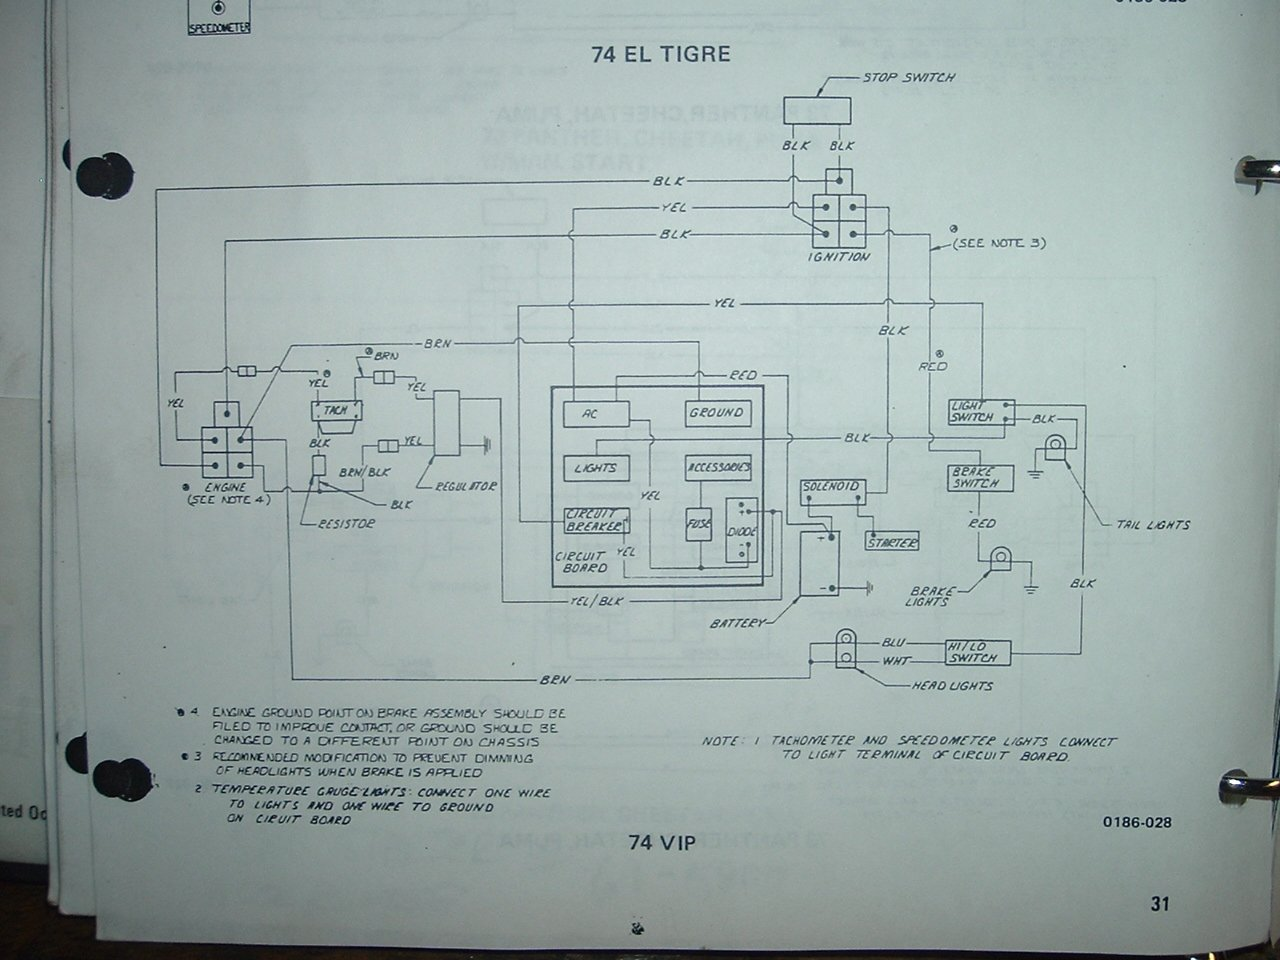 92 700 wildcat wiring diagram wiring diagram bobcat utv wiring diagram economy wildcat wiring diagram question [ 1280 x 960 Pixel ]